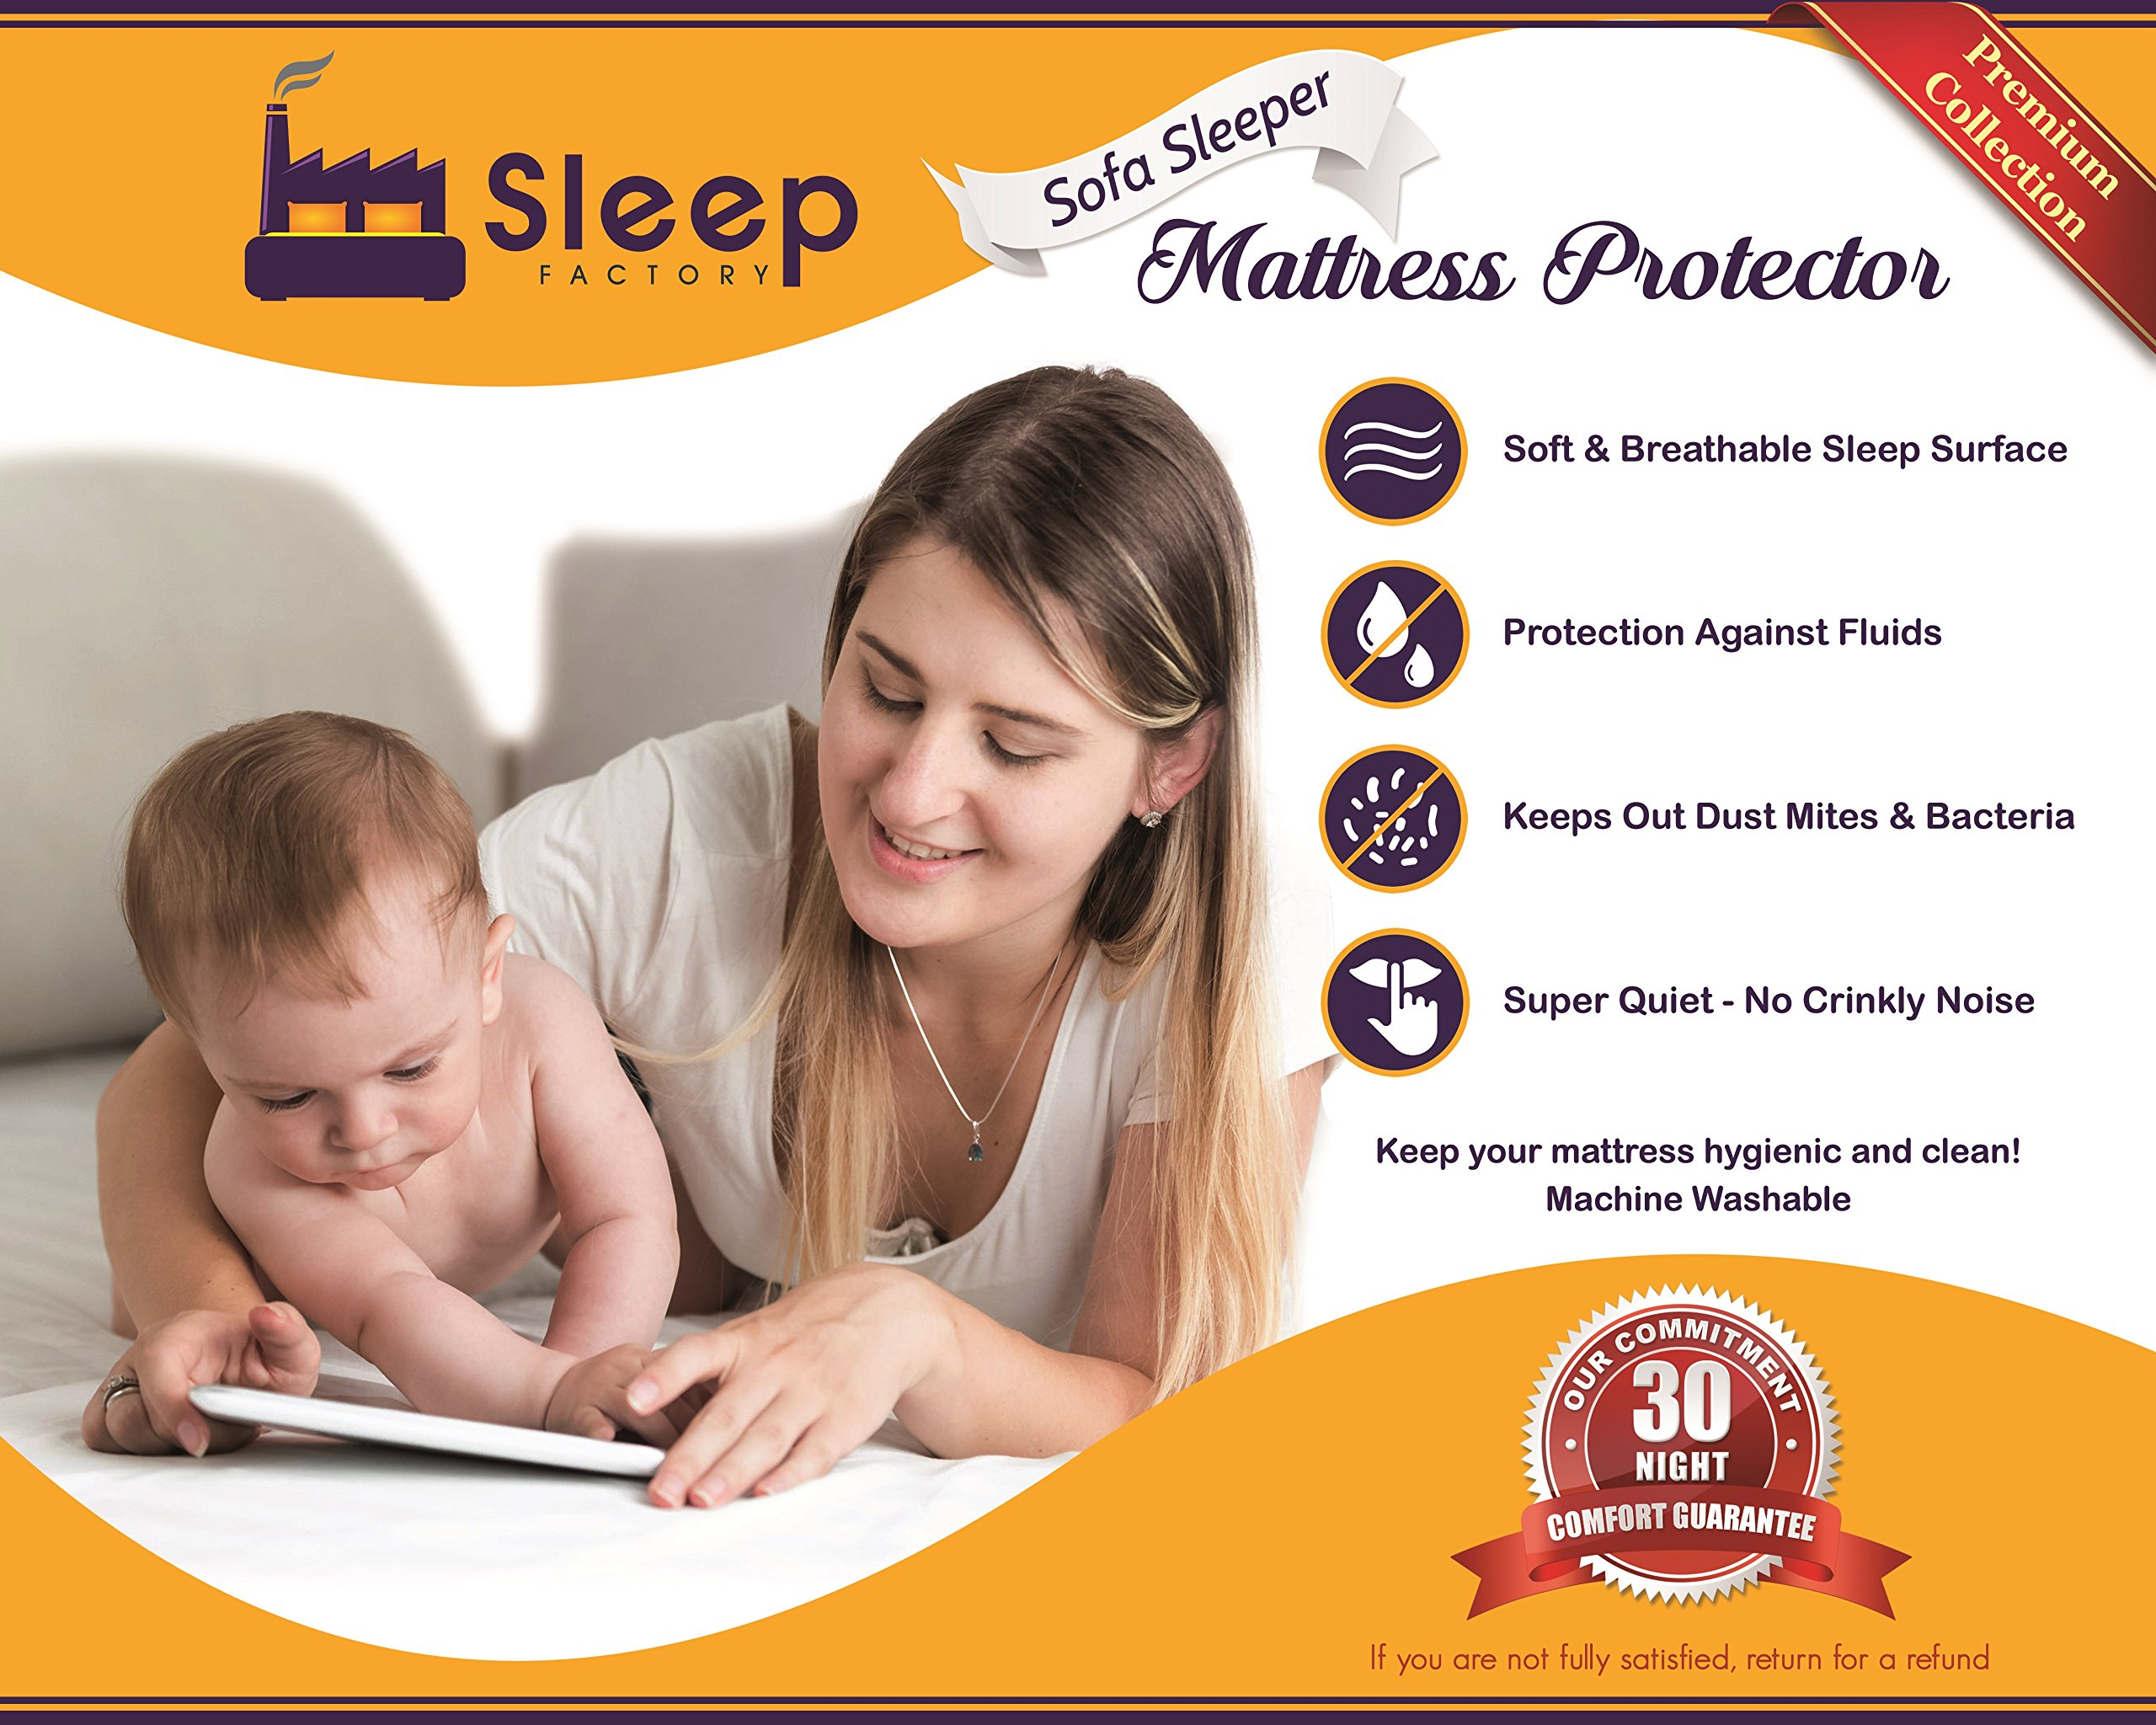 """Sleep Factory - Mattress & Sofa Bed Sleeper Protector 